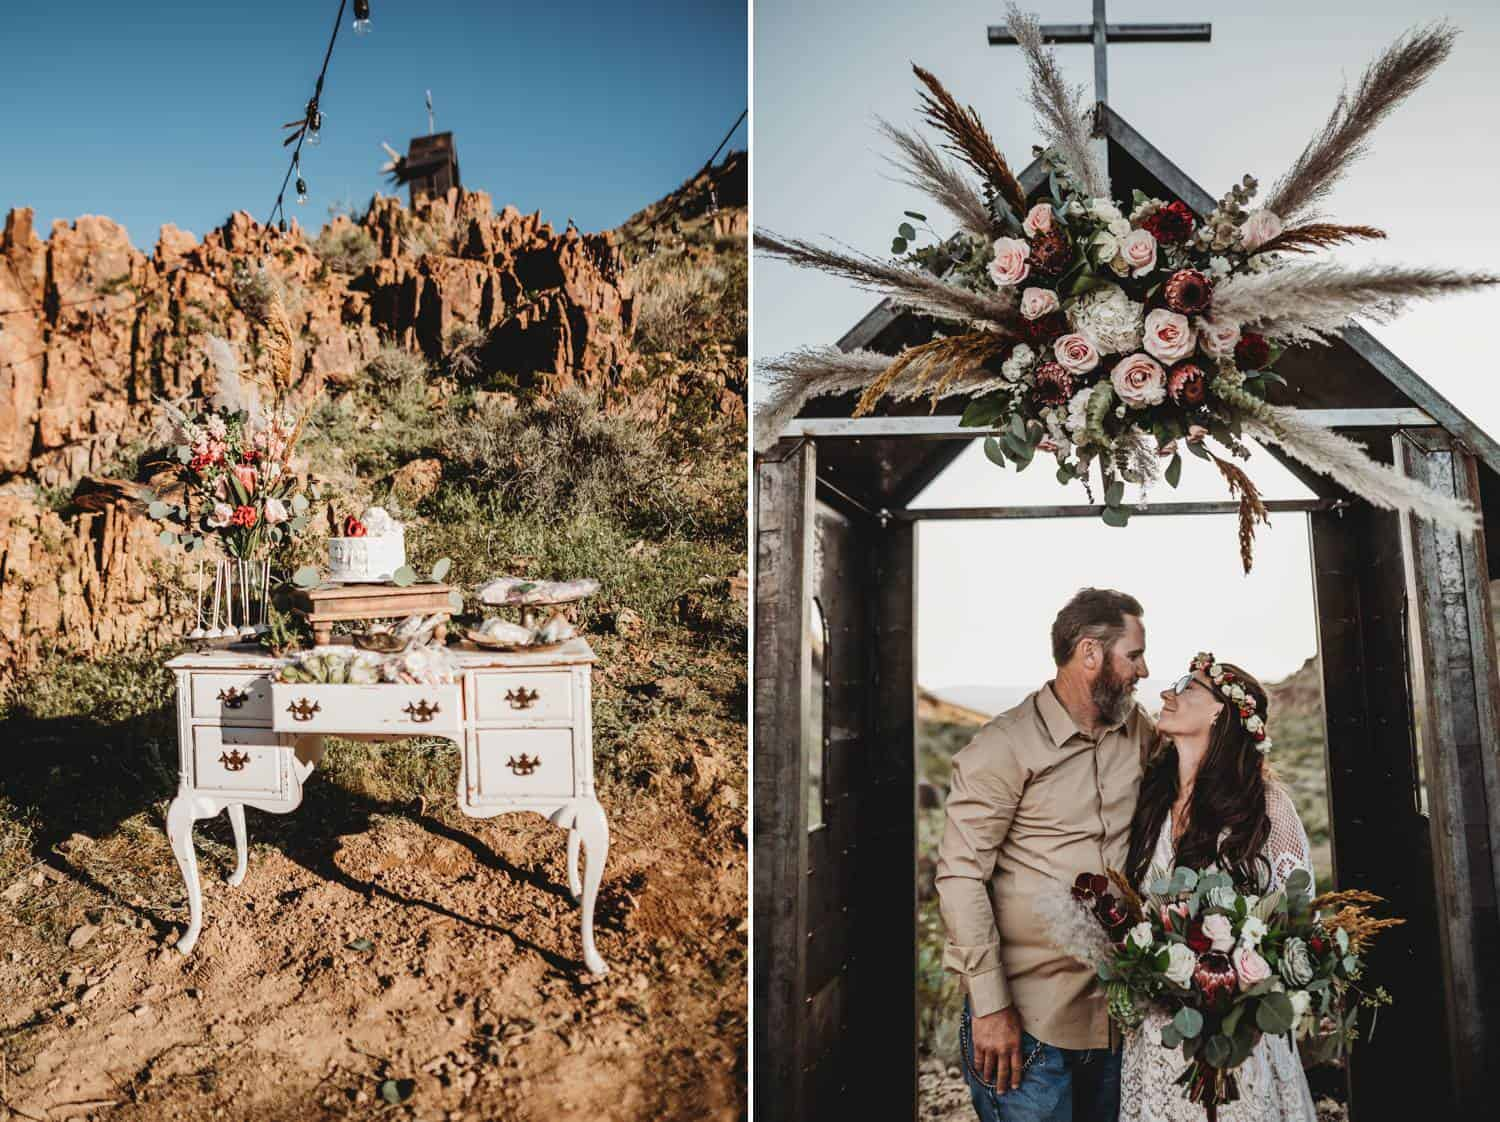 Two photographs from a desert wedding. In one, a white vintage dresser is decorated with flowers and a wedding cake, all set against the backdrop of the red mountains. In the next photo, a casually-dressed groom embraces his white-gowned bride as they stand under a tiny outdoor chapel that is decorated with flowers and a cross.